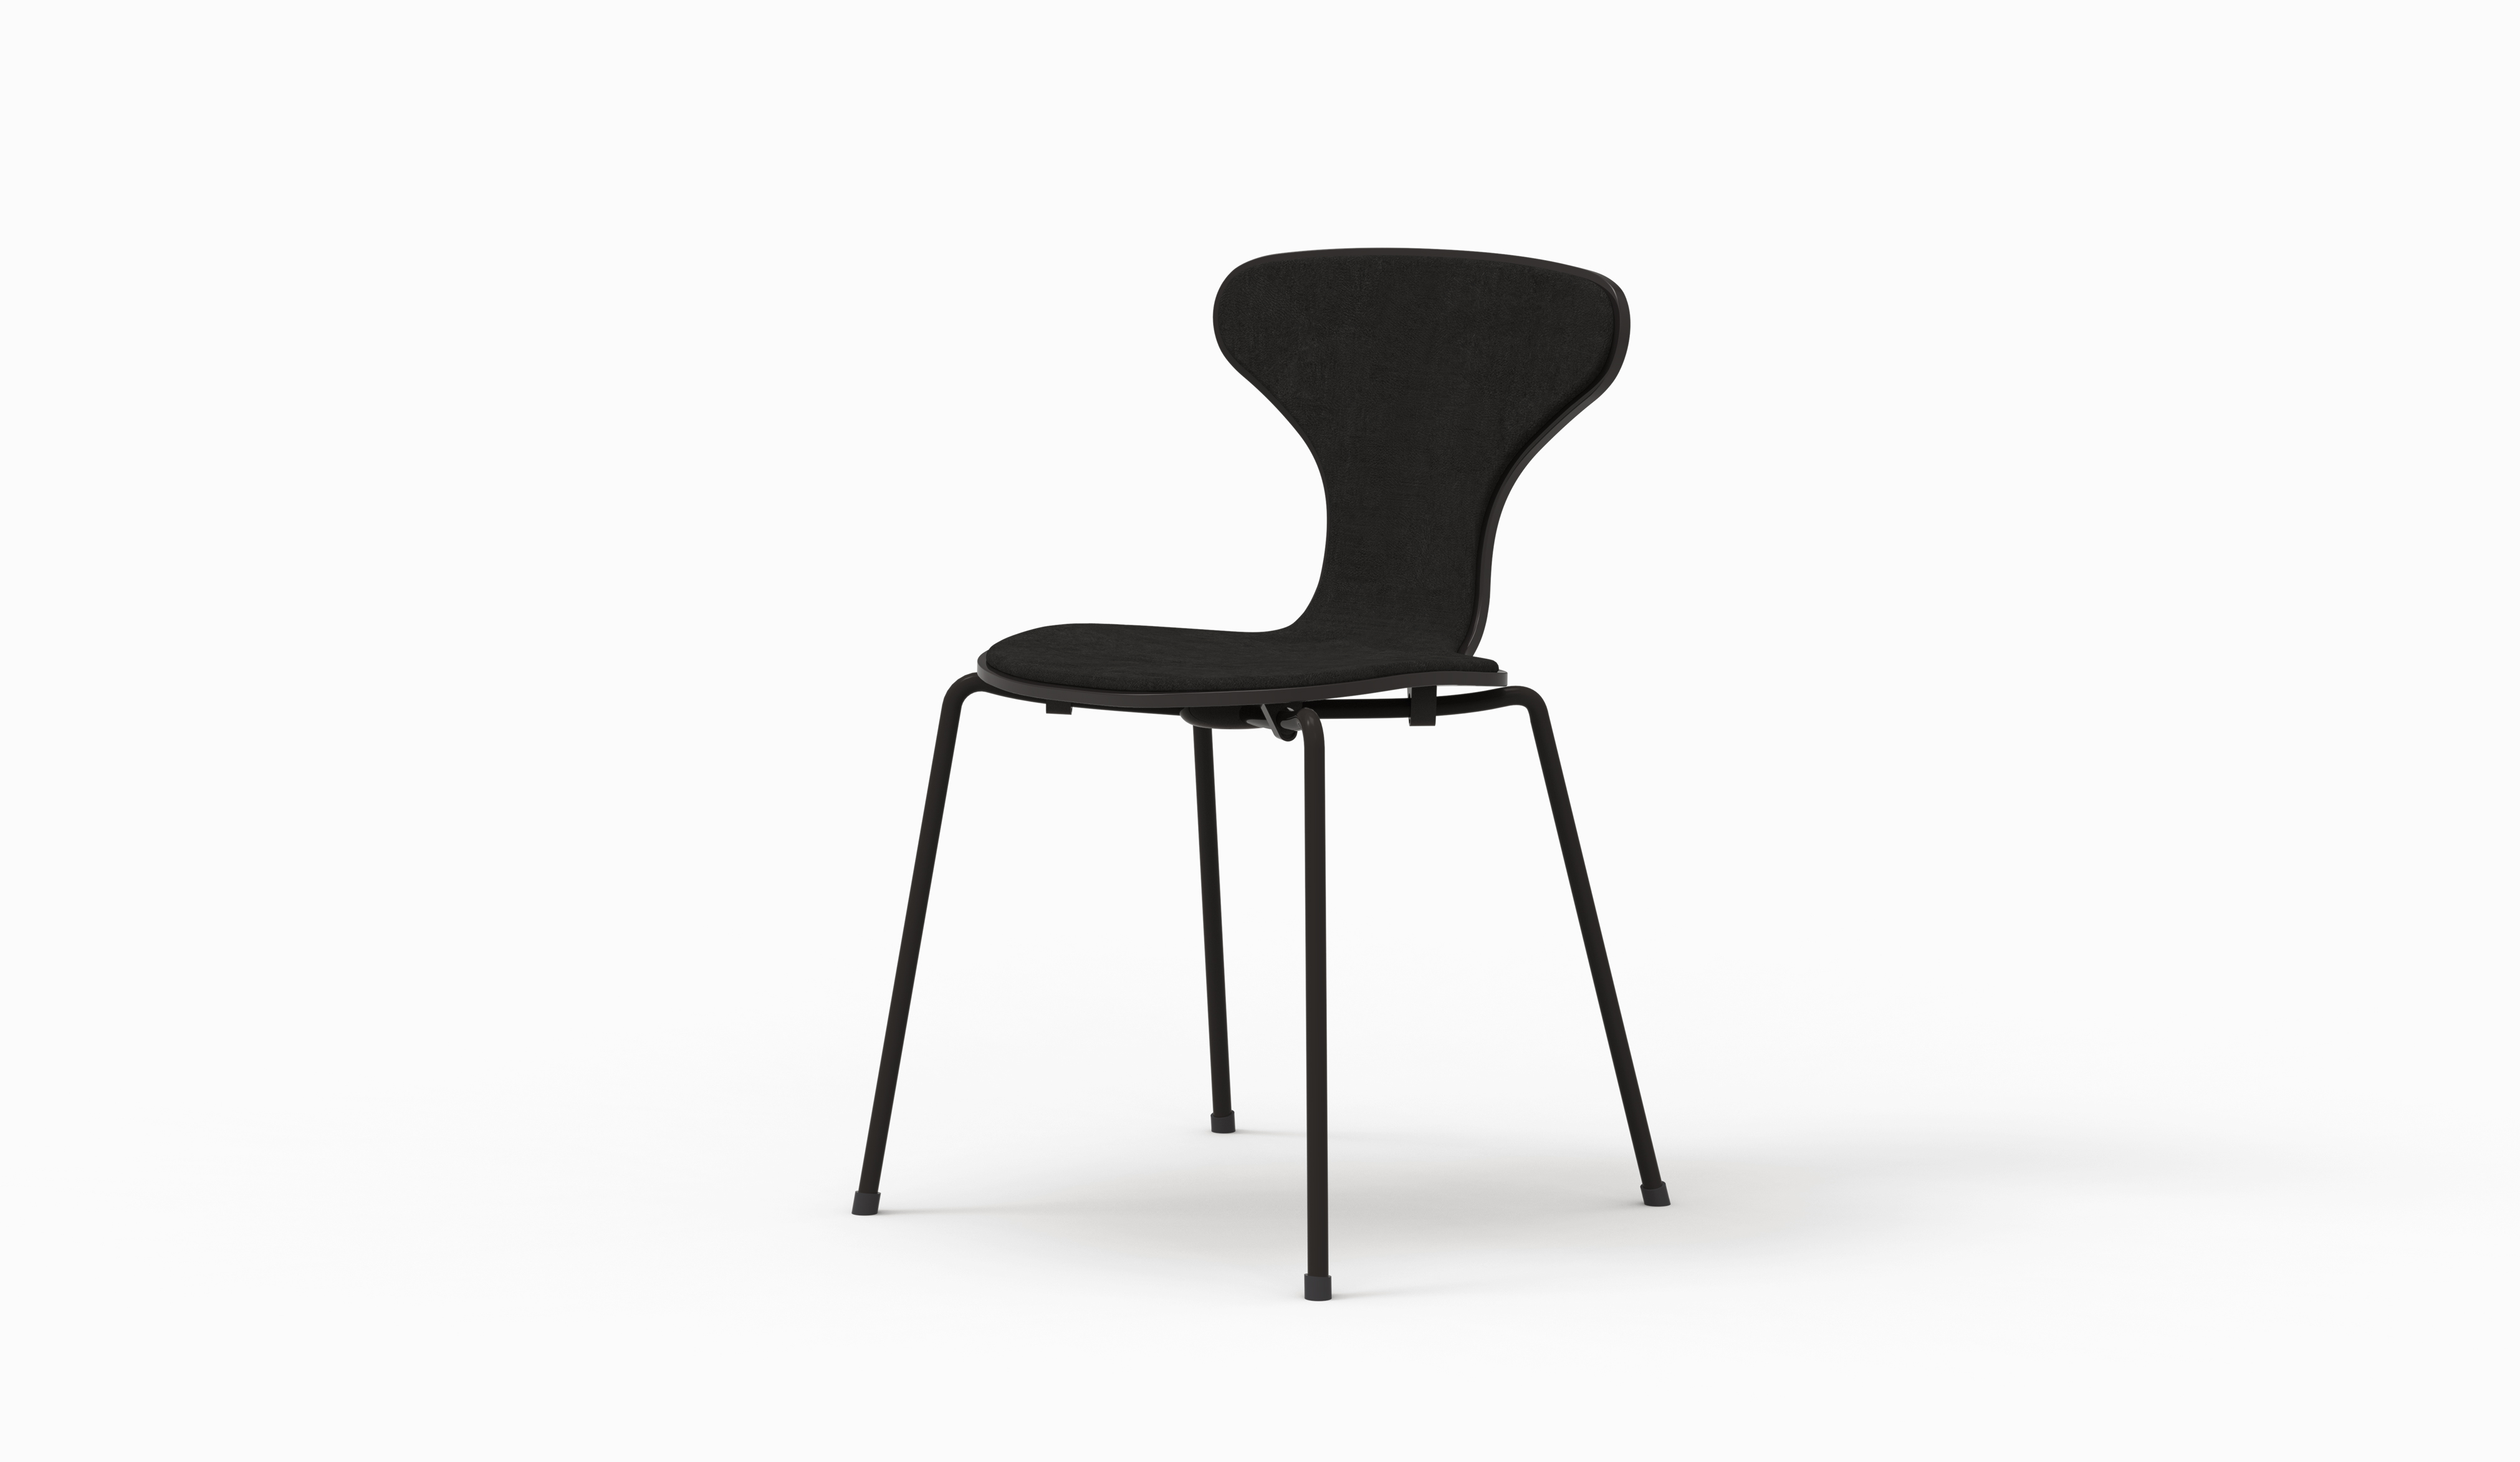 HI chair - Black - Aged Black Leather